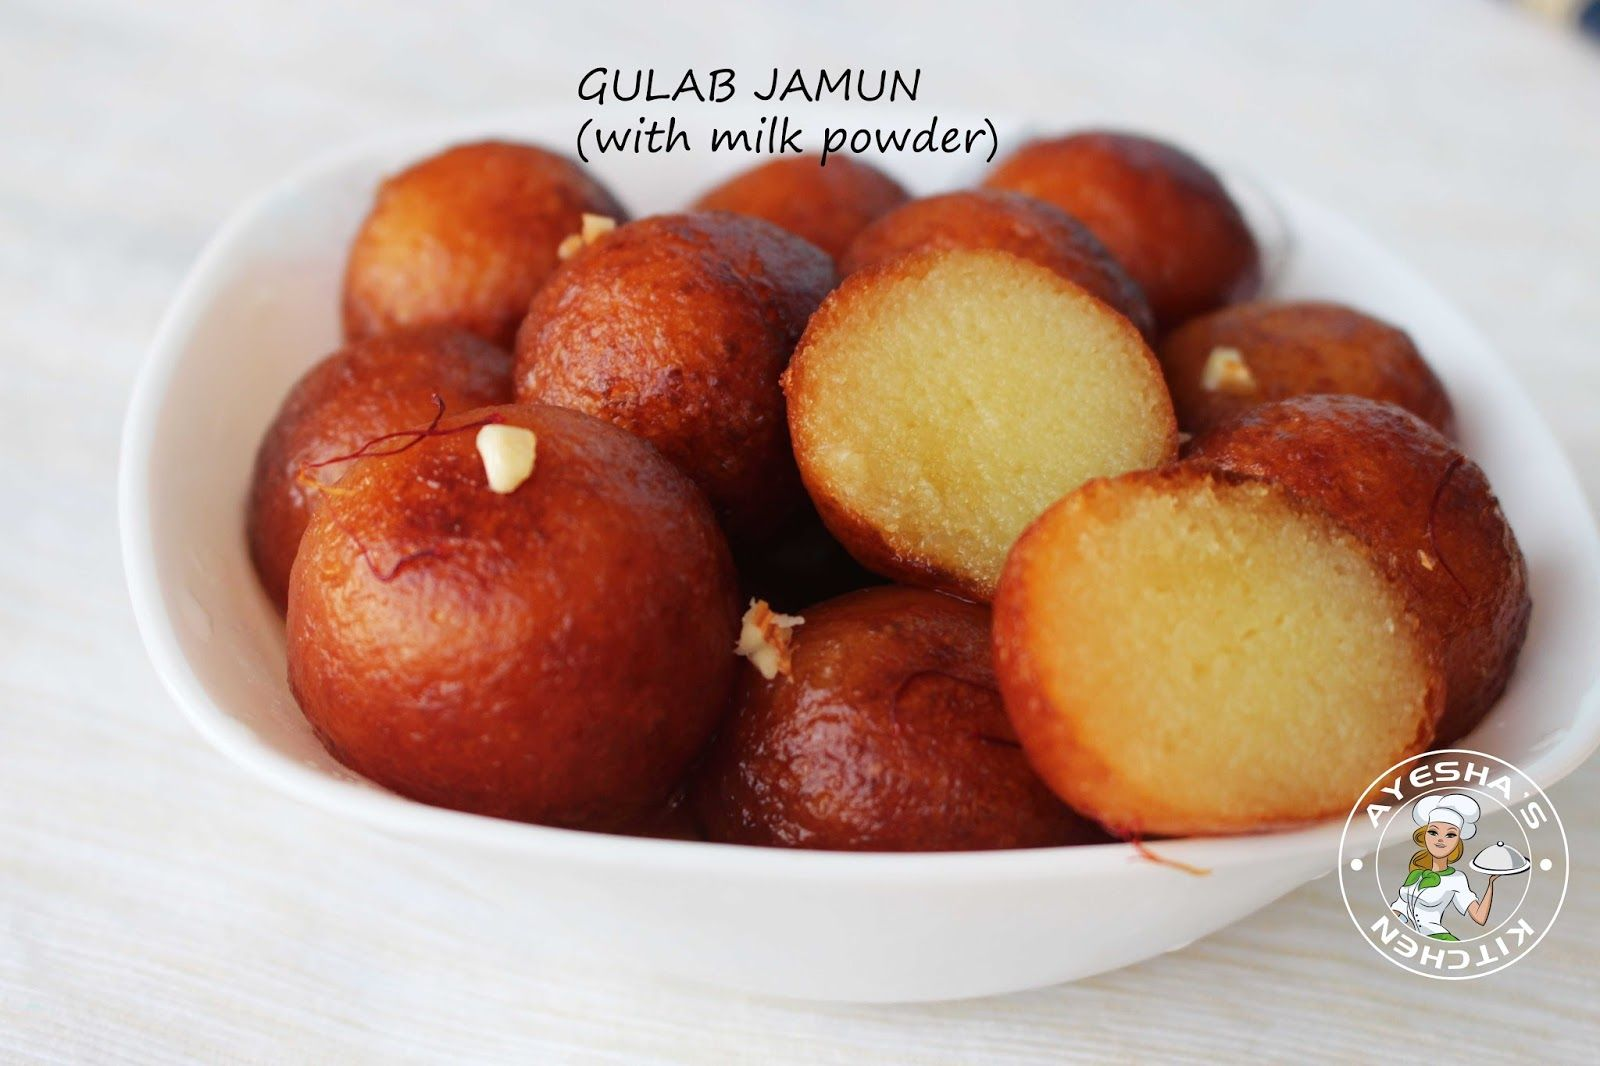 Gulab Jamun Recipe Eggless Gulab Jamun With Milkpowder Homemade Gulab Jamun Recipe Ayesha S Kitchen Jamun Recipe Milk Powder Recipe Gulab Jamun